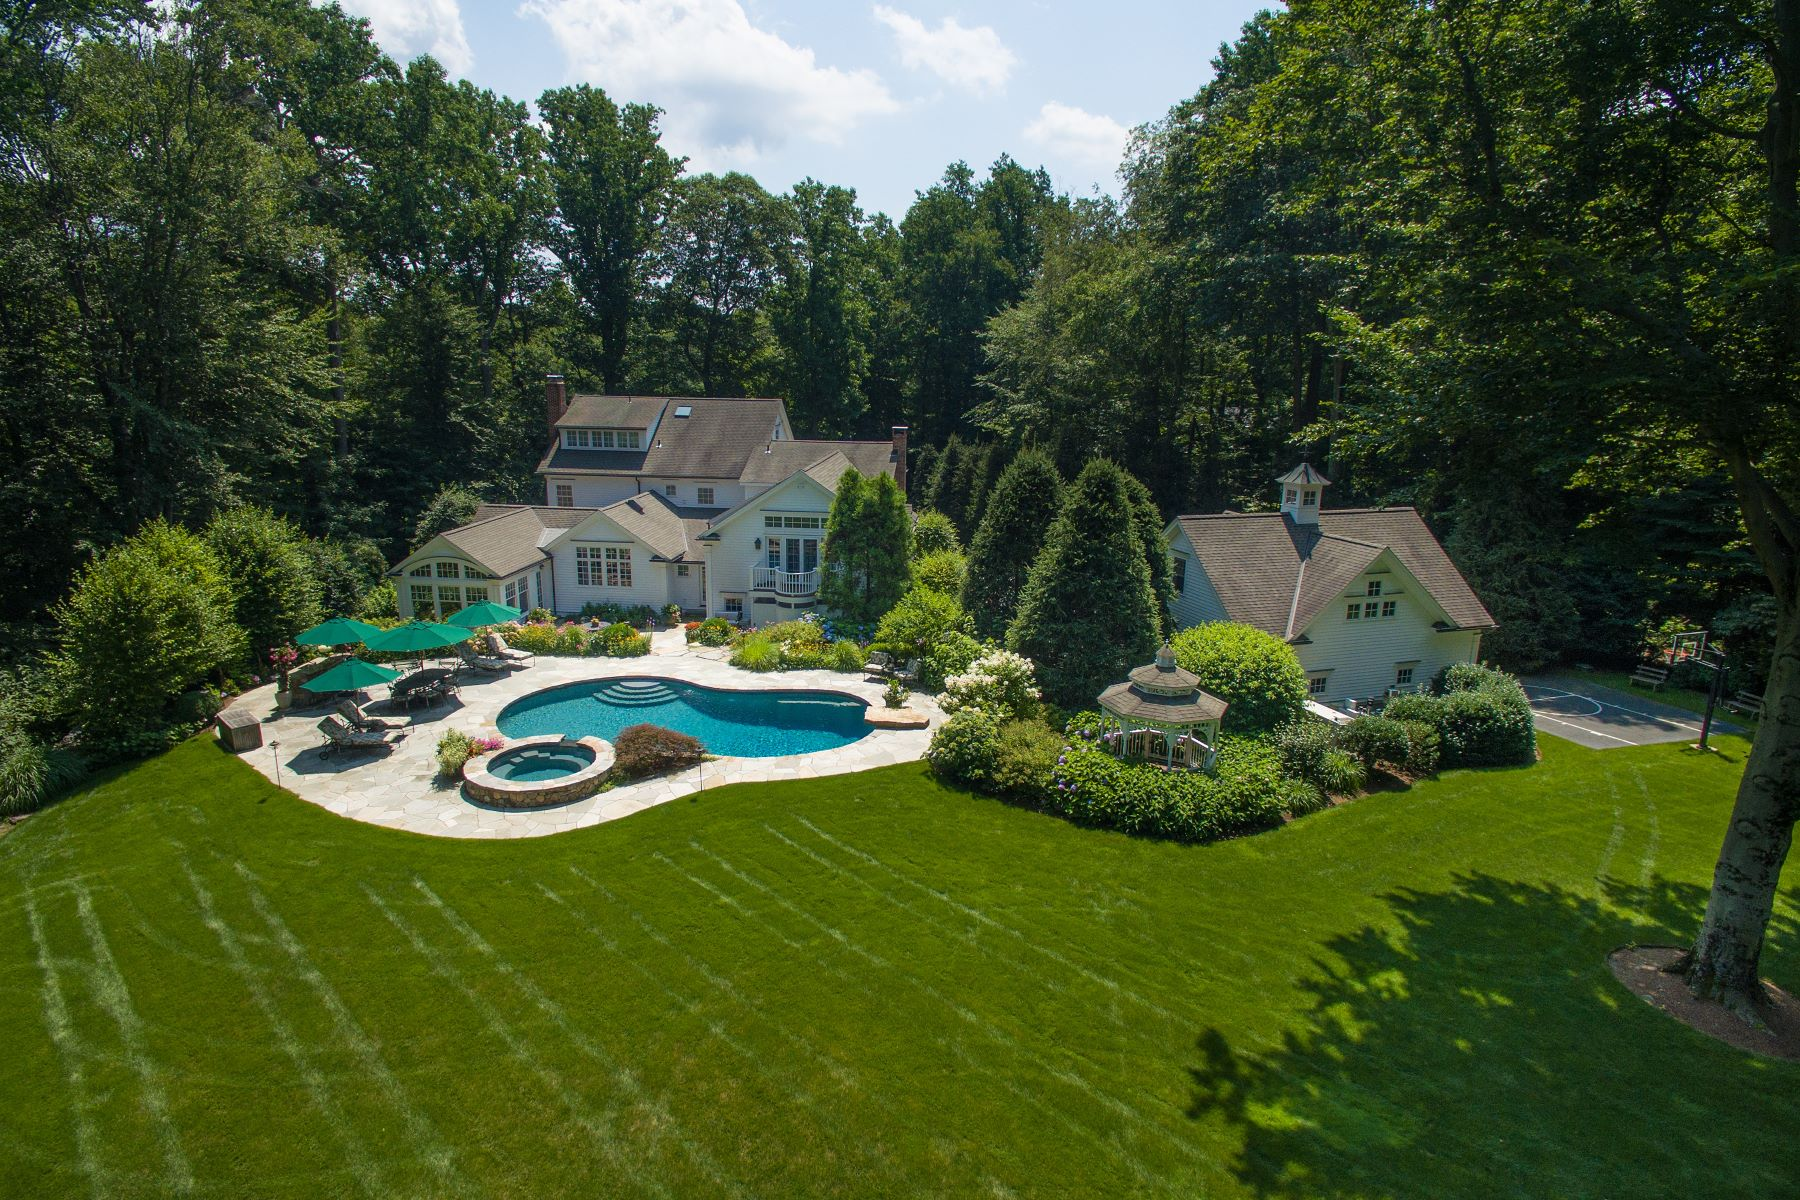 House for Sale at 74 Pheasant Drive 74 Pheasant Drive New Canaan, Connecticut 06840 United States